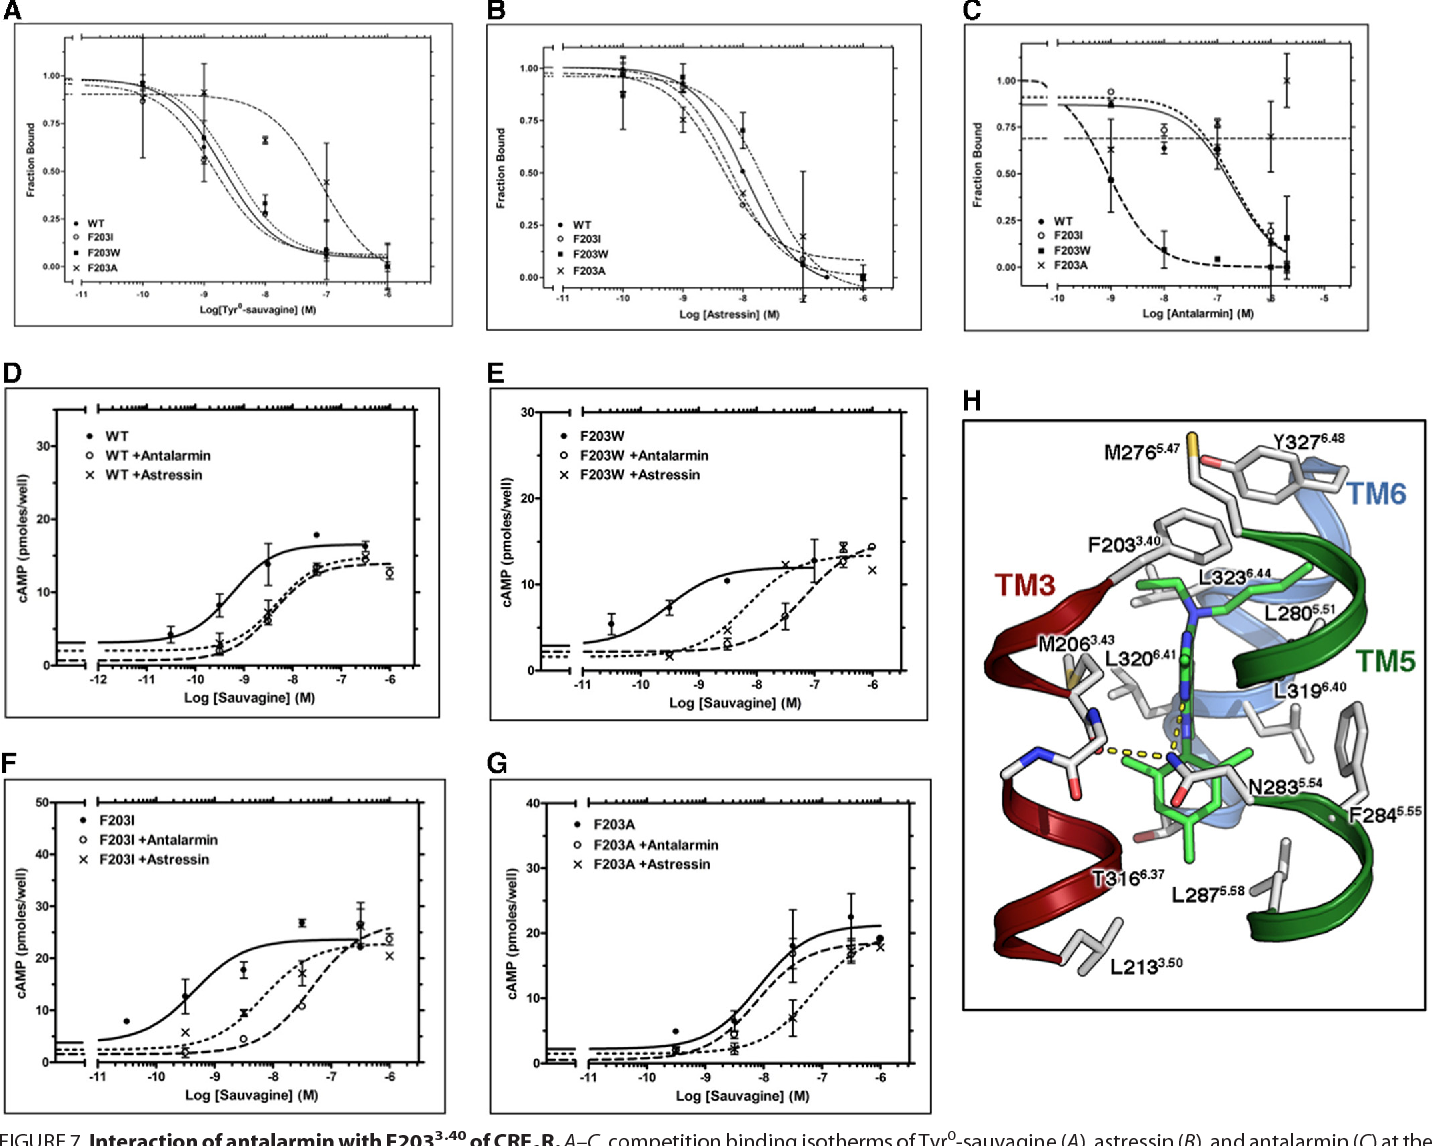 FIGURE 7. Interaction of antalarmin with F2033.40 of CRF1R. A–C, competition binding isotherms of Tyr 0-sauvagine (A), astressin (B), and antalarmin (C) at the WT CRF1R and its F203 3.40A, F2033.40I, and F2033.40W mutants. The means and S.E. (duplicate determination) are shown from a representative experiment performed 3– 6 times with similar results. The affinities of 125I-Tyr0-sauvagine (%logKD), astressin (%logKi), and antalarmin (logKi)), determined from these experiments, are given in Table 2. D–G, stimulation of cAMP accumulation in HEK293 cells expressing WT (D), F2033.40W (E), F2033.40I (F), or F2033.40A (G) by sauvagine in the absence or presence of 0.3$M astressin or 1–2$M antalarmin. The means and S.E. (duplicate determination) are shown from a representative experiment performed 3–10 times with similar results. The potencies (%logEC50) of sauvagine without or with antalarmin or astressin, determined from these experiments, are given in Table 2. H, molecular model of the complex between antalarmin and CRF1R. The ethyl groups of the ligand interact with F203 3.40, the aromatic ring interacts with M2063.43 and N2835.54, and the methyl groups of the terminal aromatic ring are located in a hydrophobic pocket of the receptor.